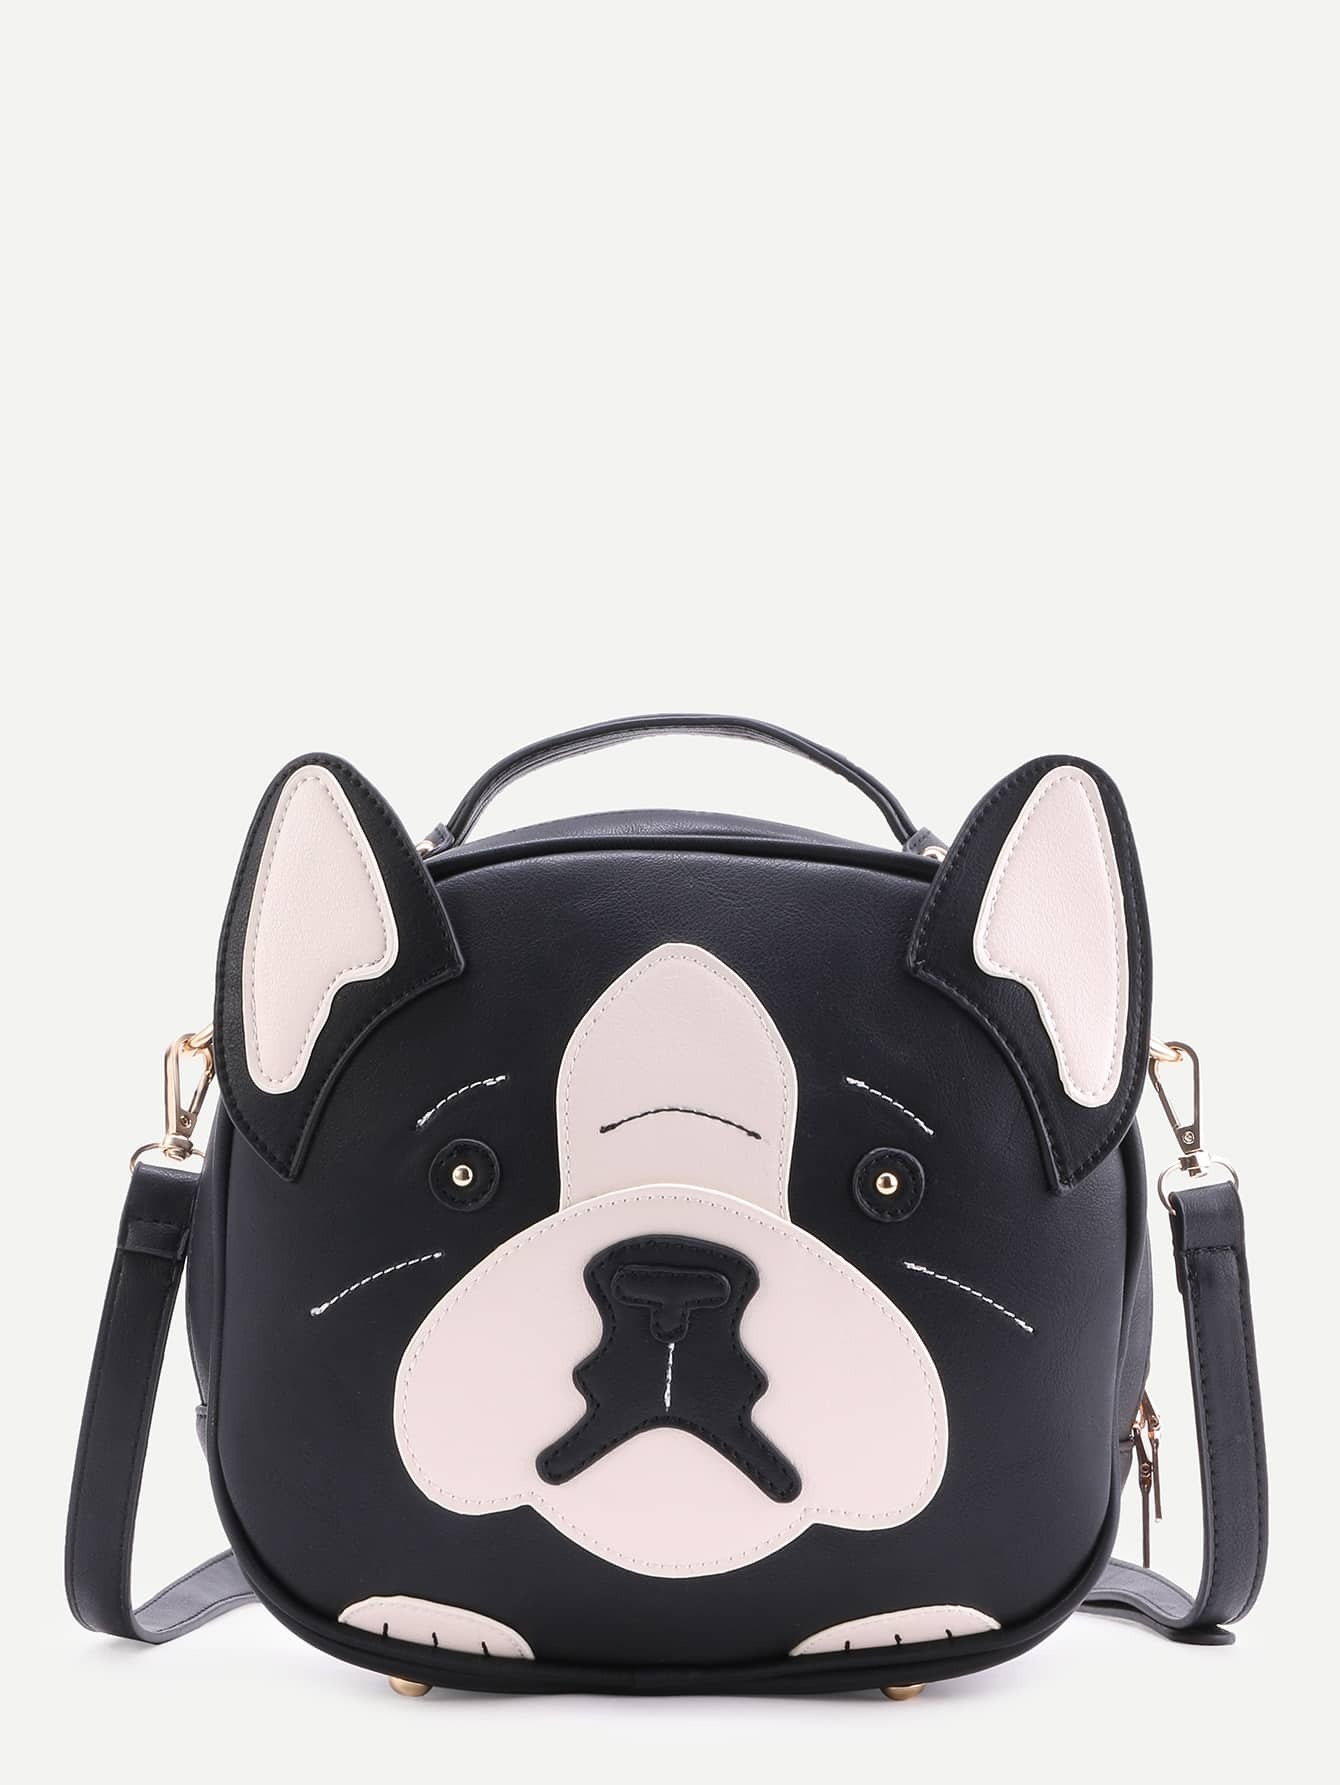 Black Faux Leather Dog Design Crossbody BagBlack Faux Leather Dog Design Crossbody Bag<br><br>color: Black and White<br>size: None